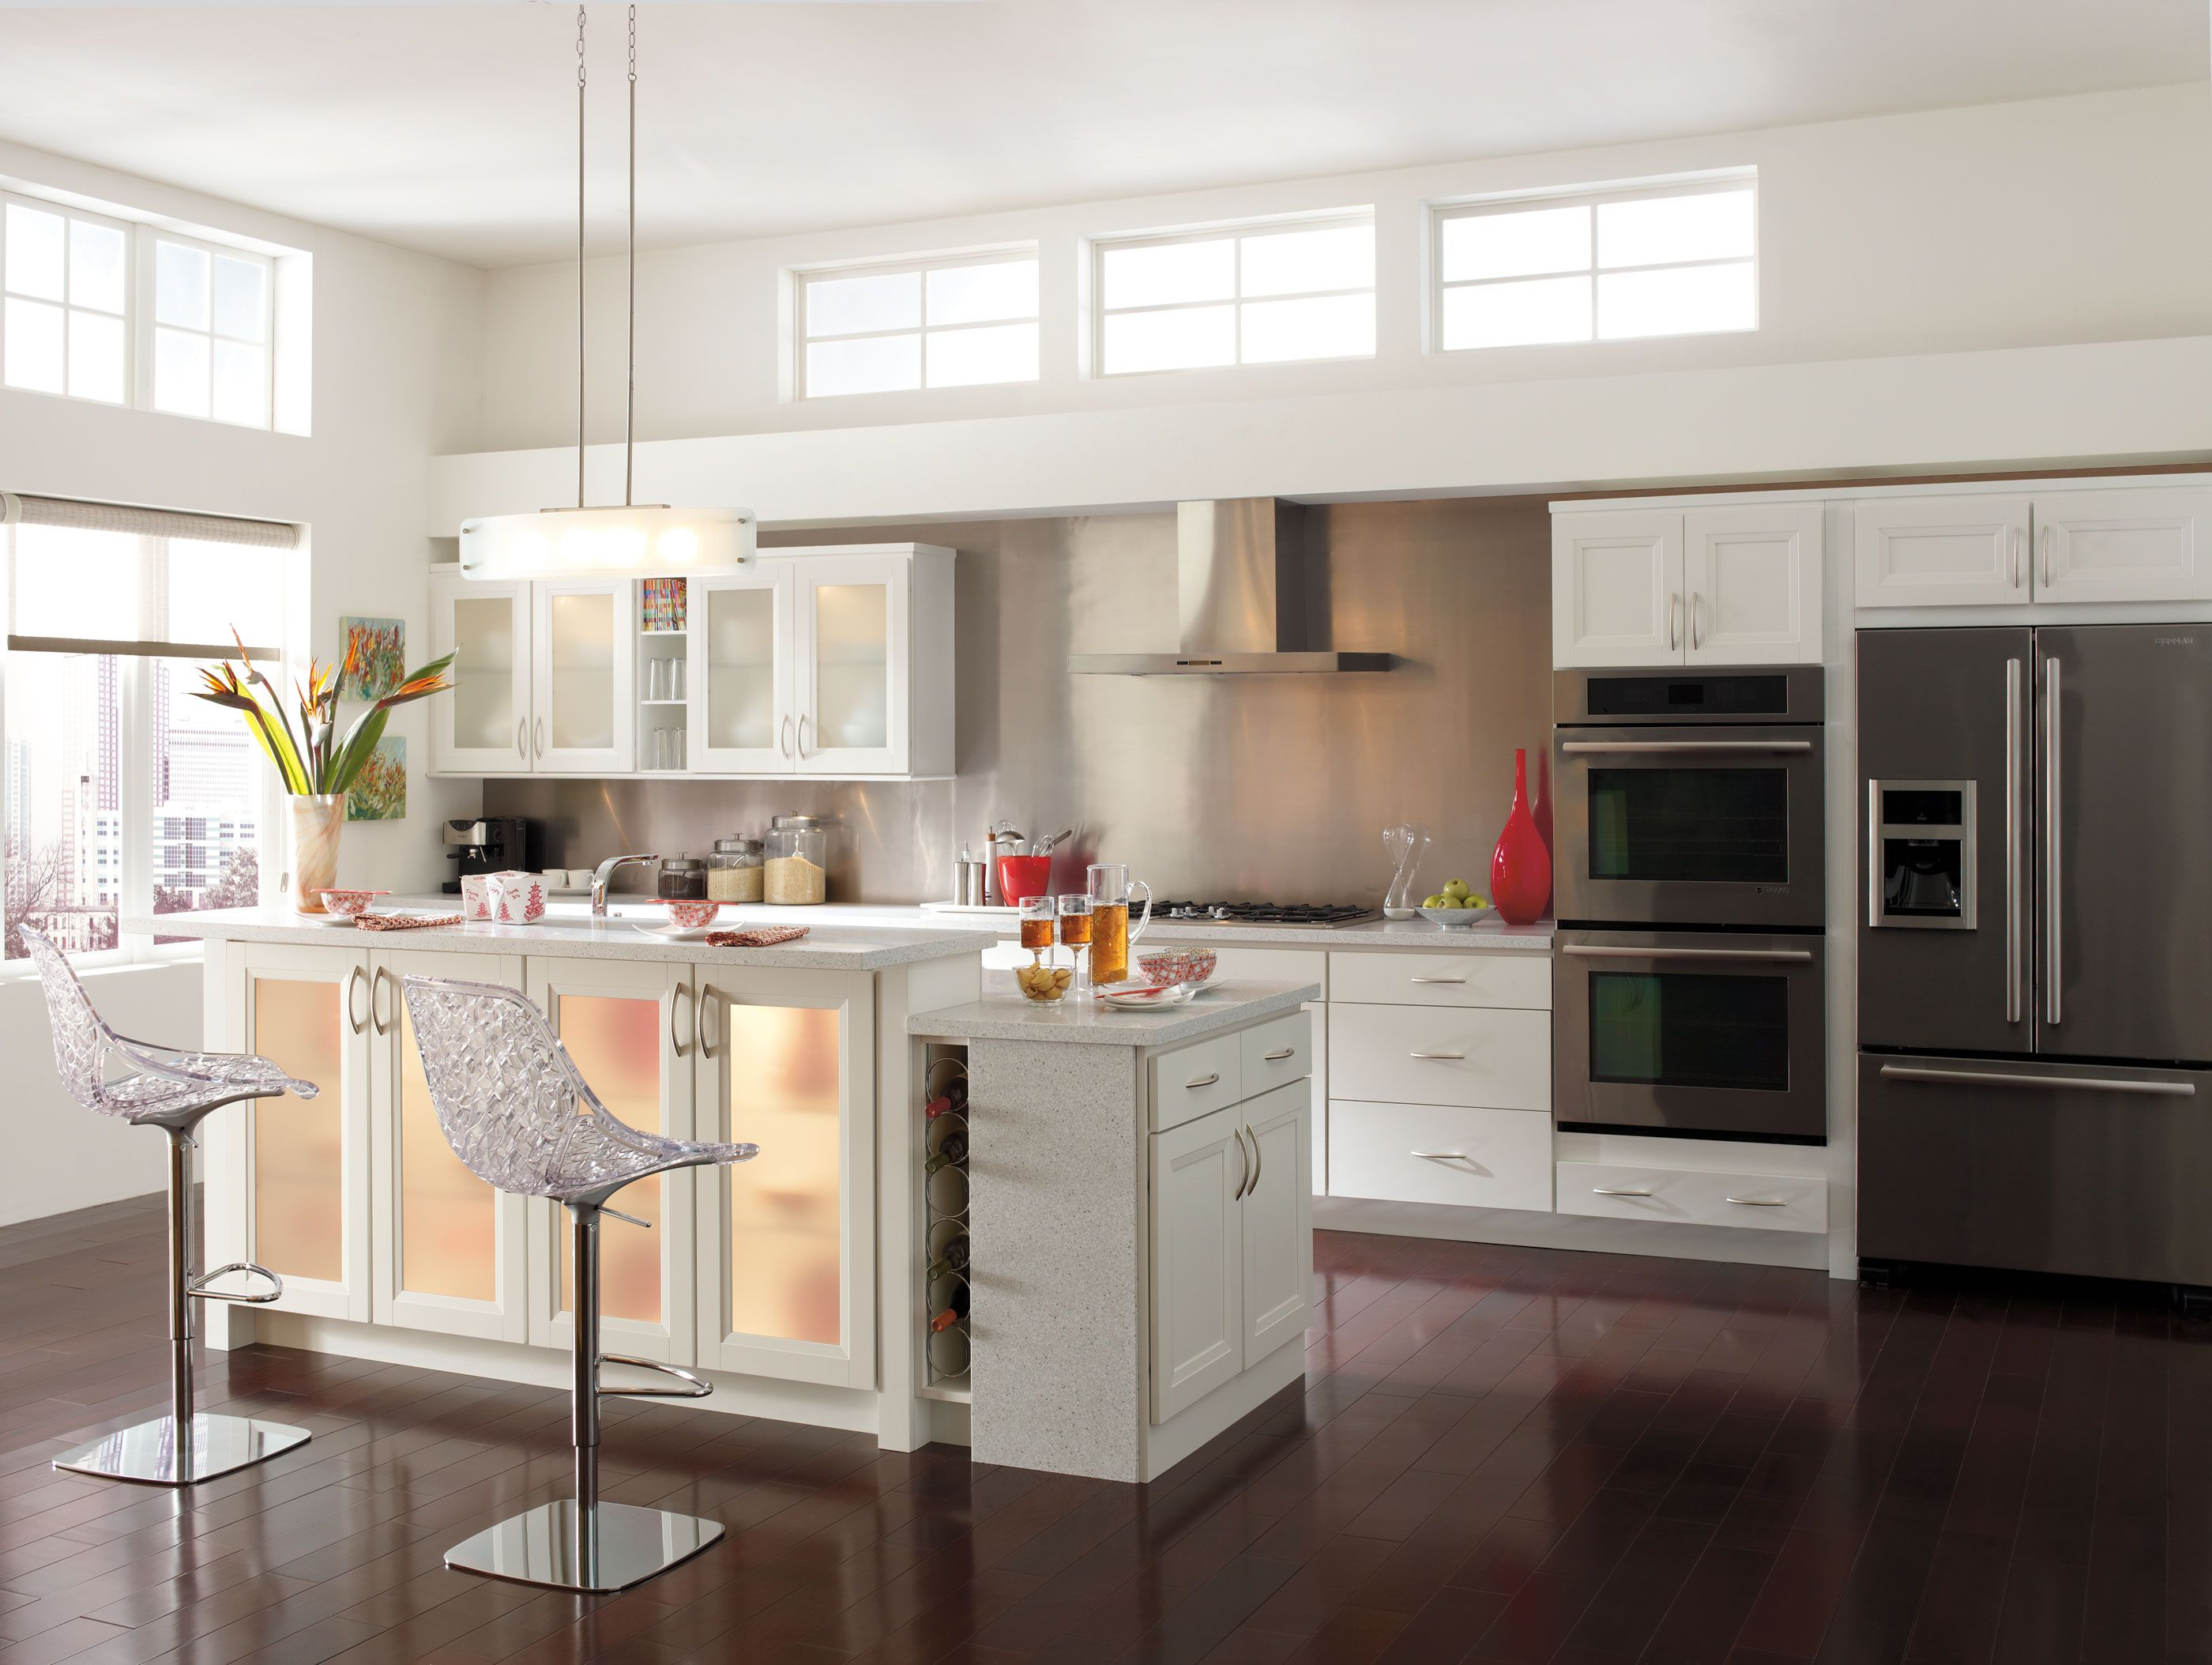 Add contrast to your kitchen by pairing a simple lightcolored